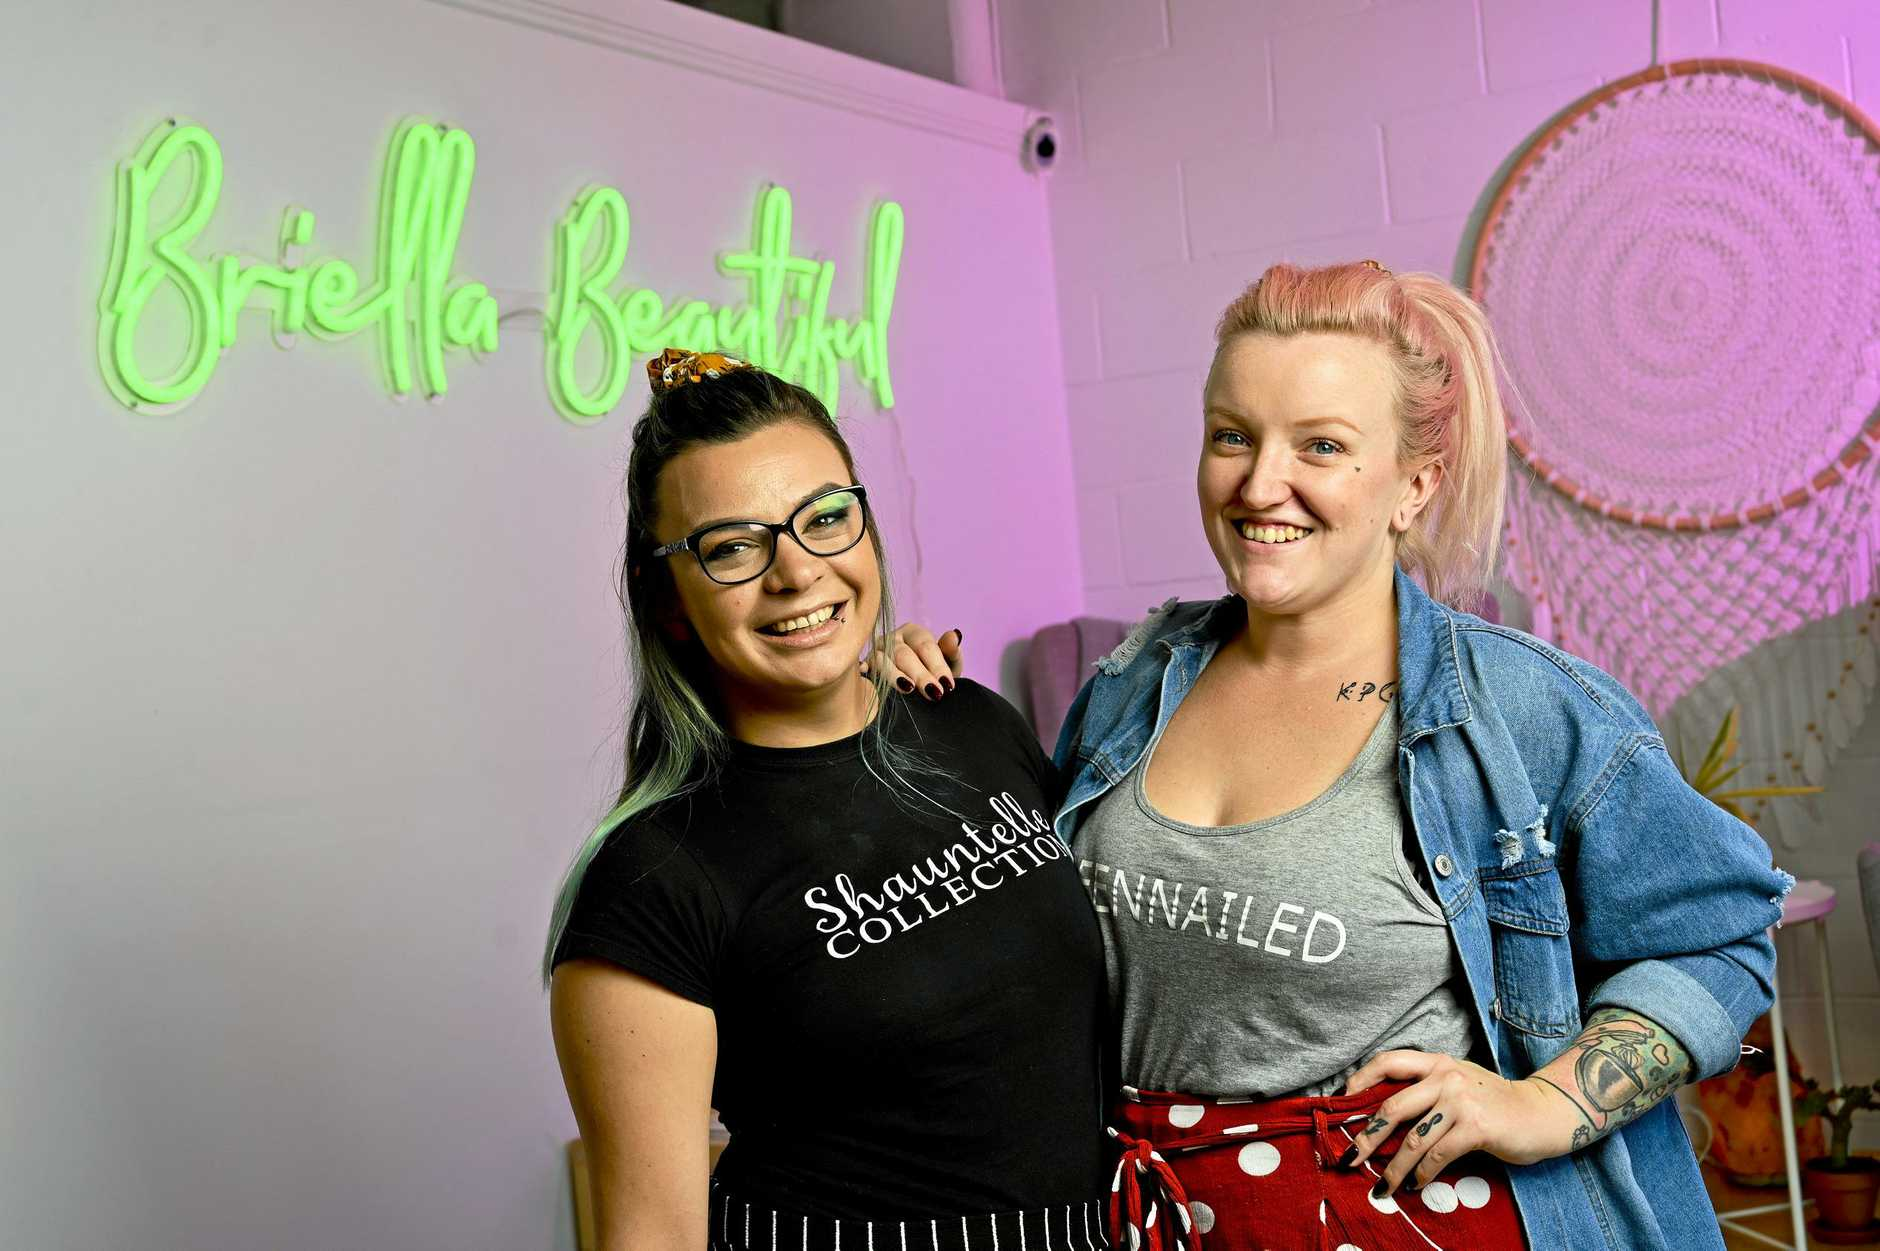 Briella Beautiful Nails Beauty is reopening in Eastern Heights. Natasha Ball and Sarah Landy